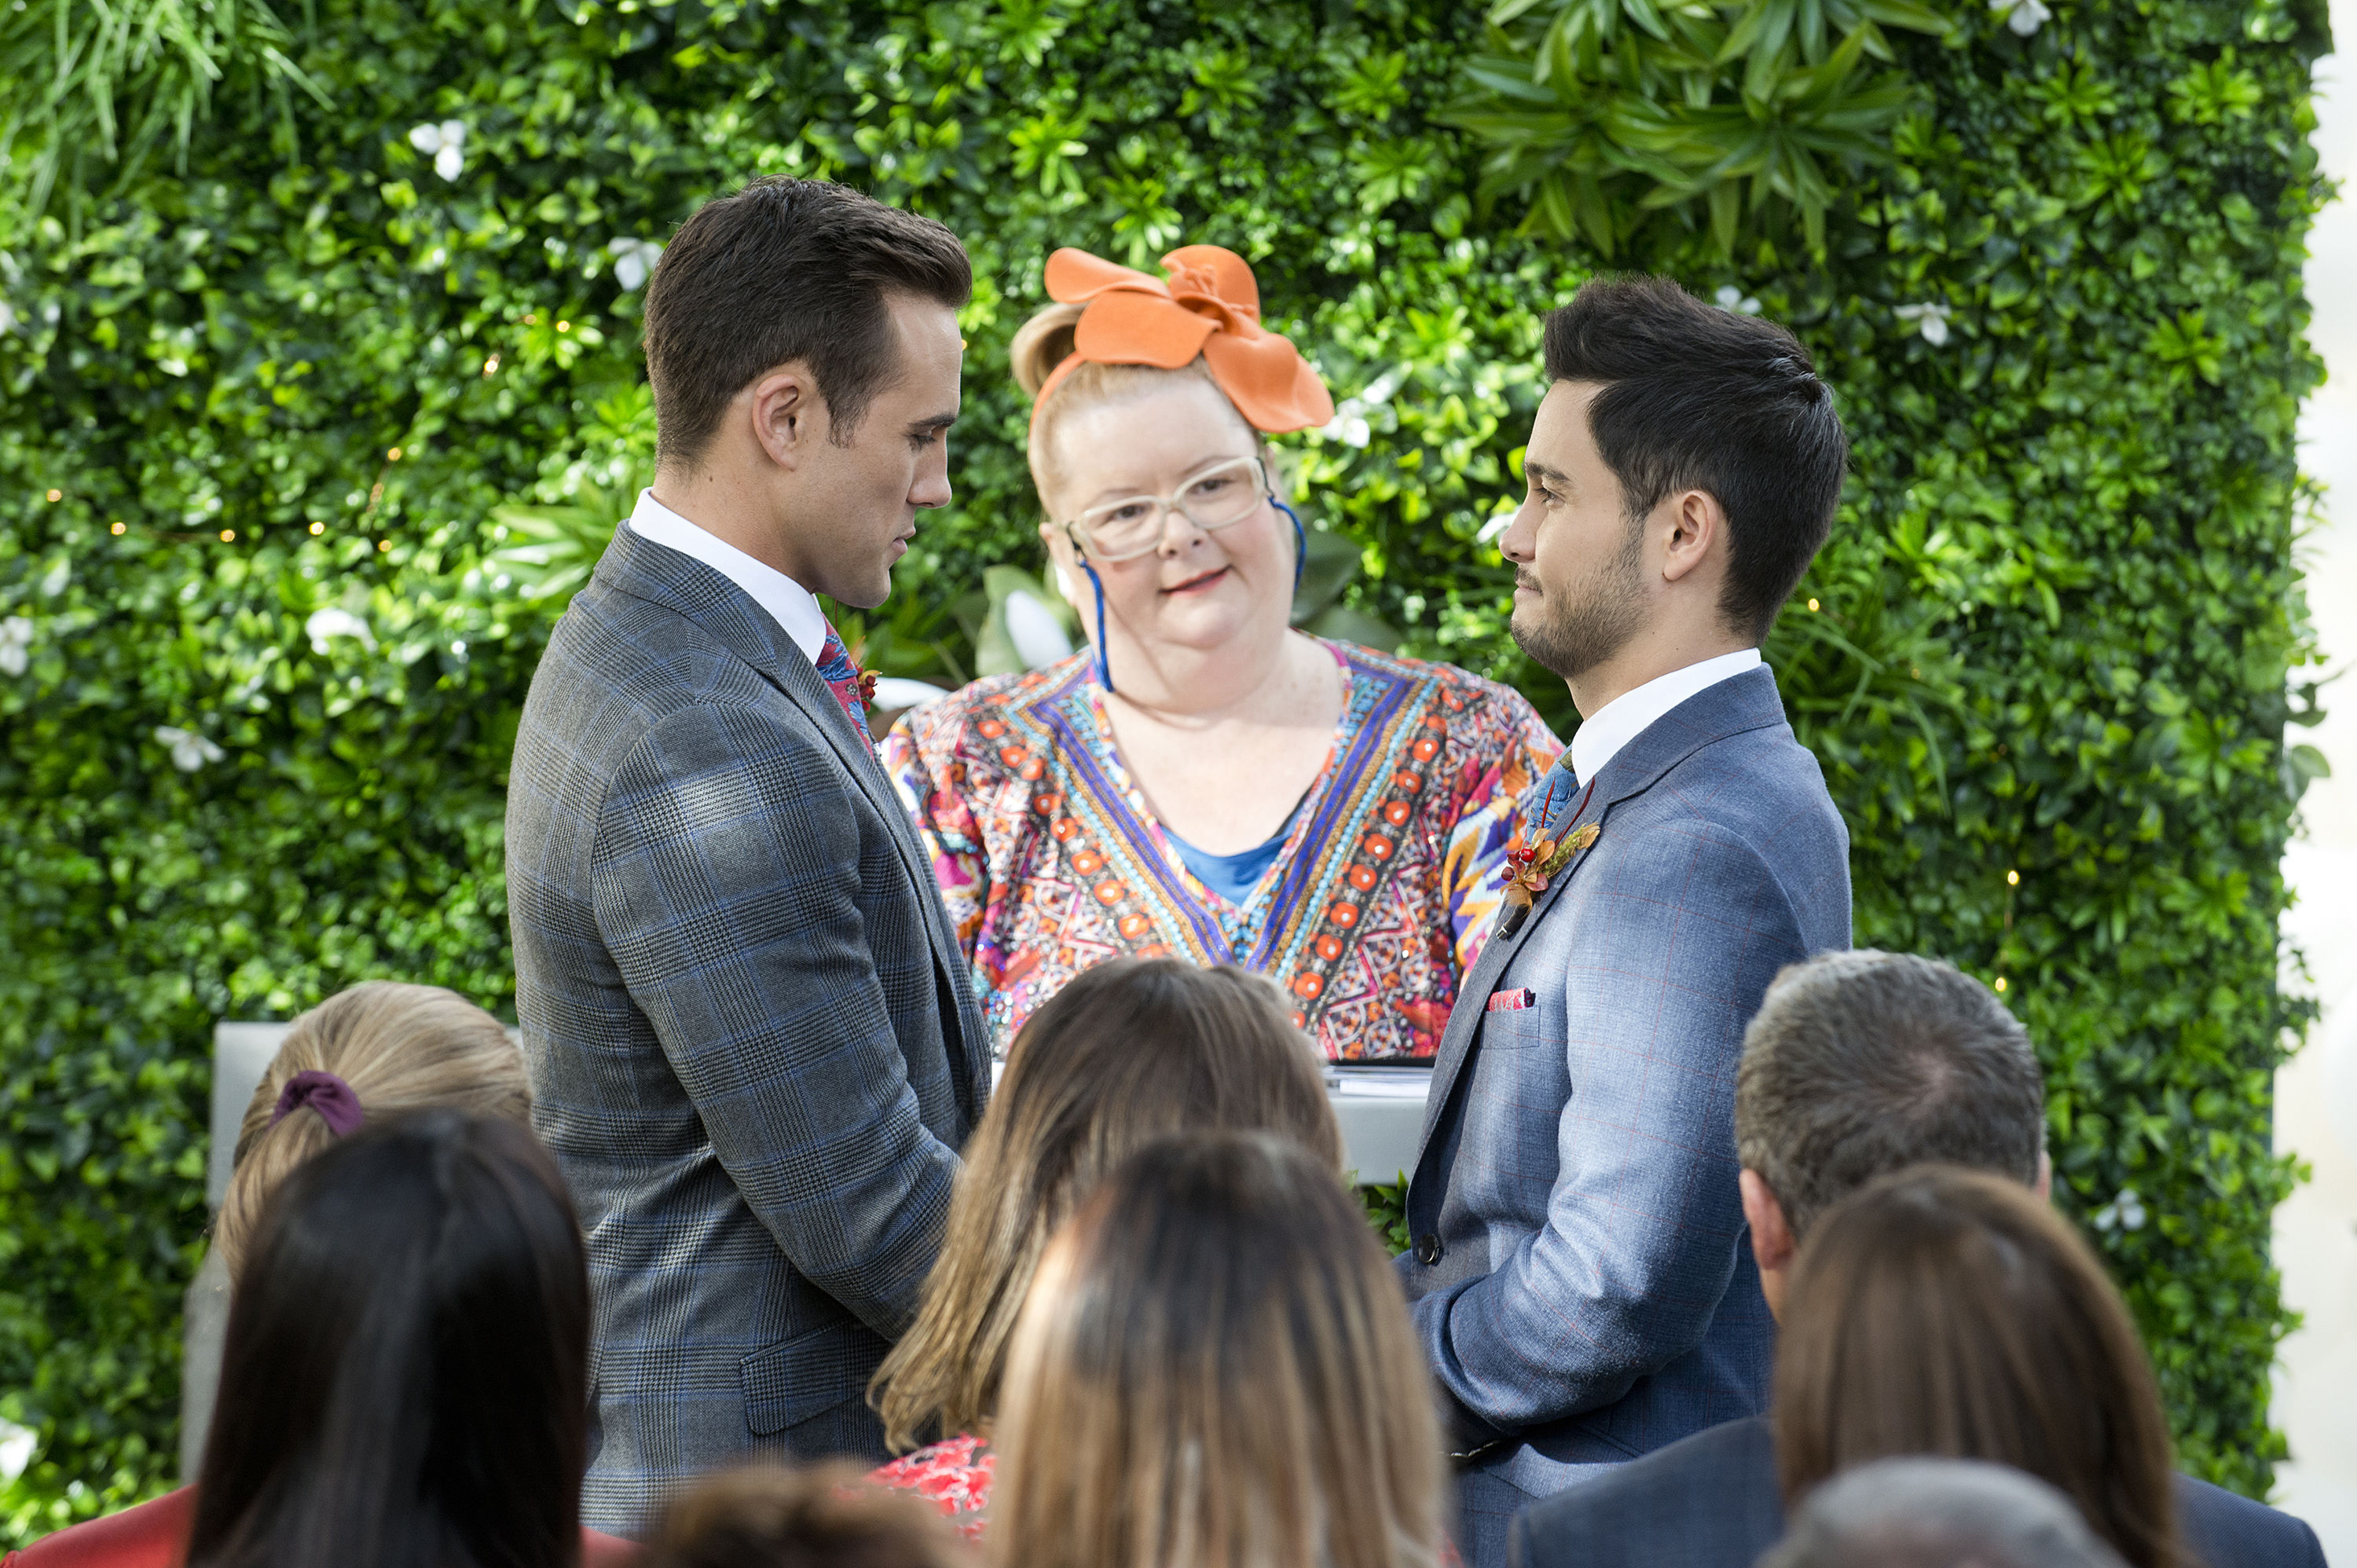 Neighbours stars reveal 'pride' at working on Australia's first TV gay wedding